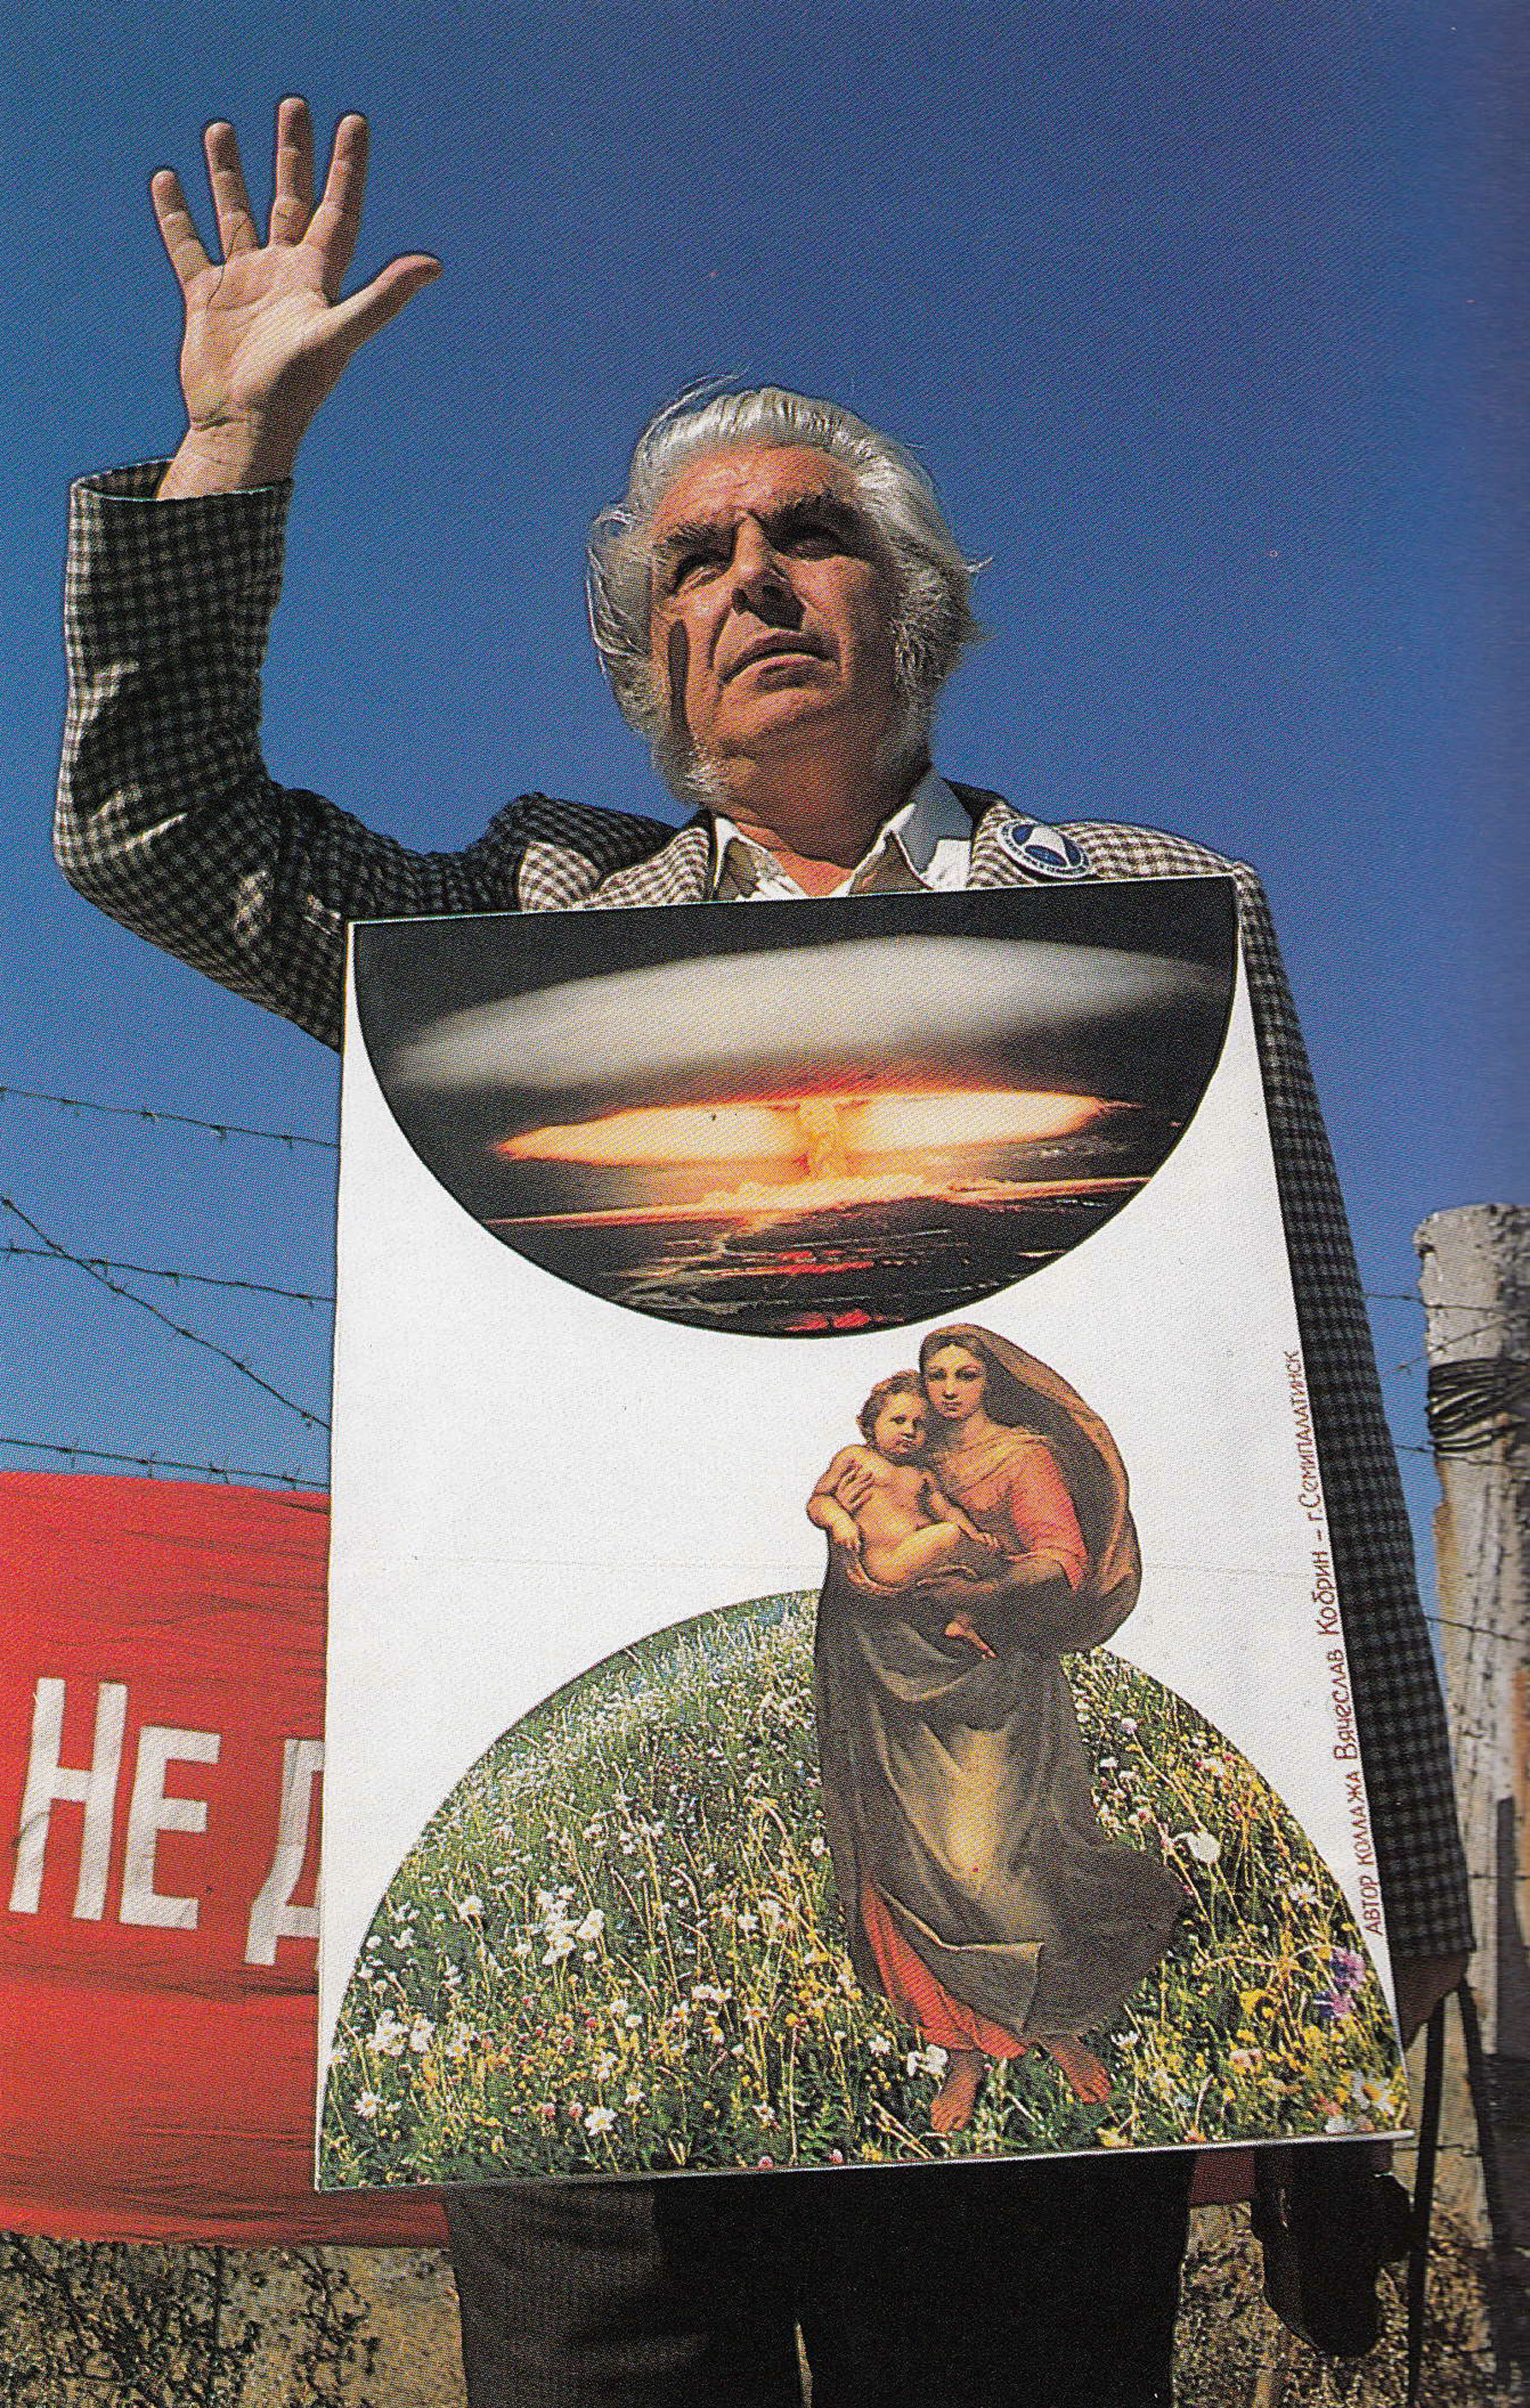 Engineer Vyacheslav Kobrin, an active participant in the anti-nuclear movement